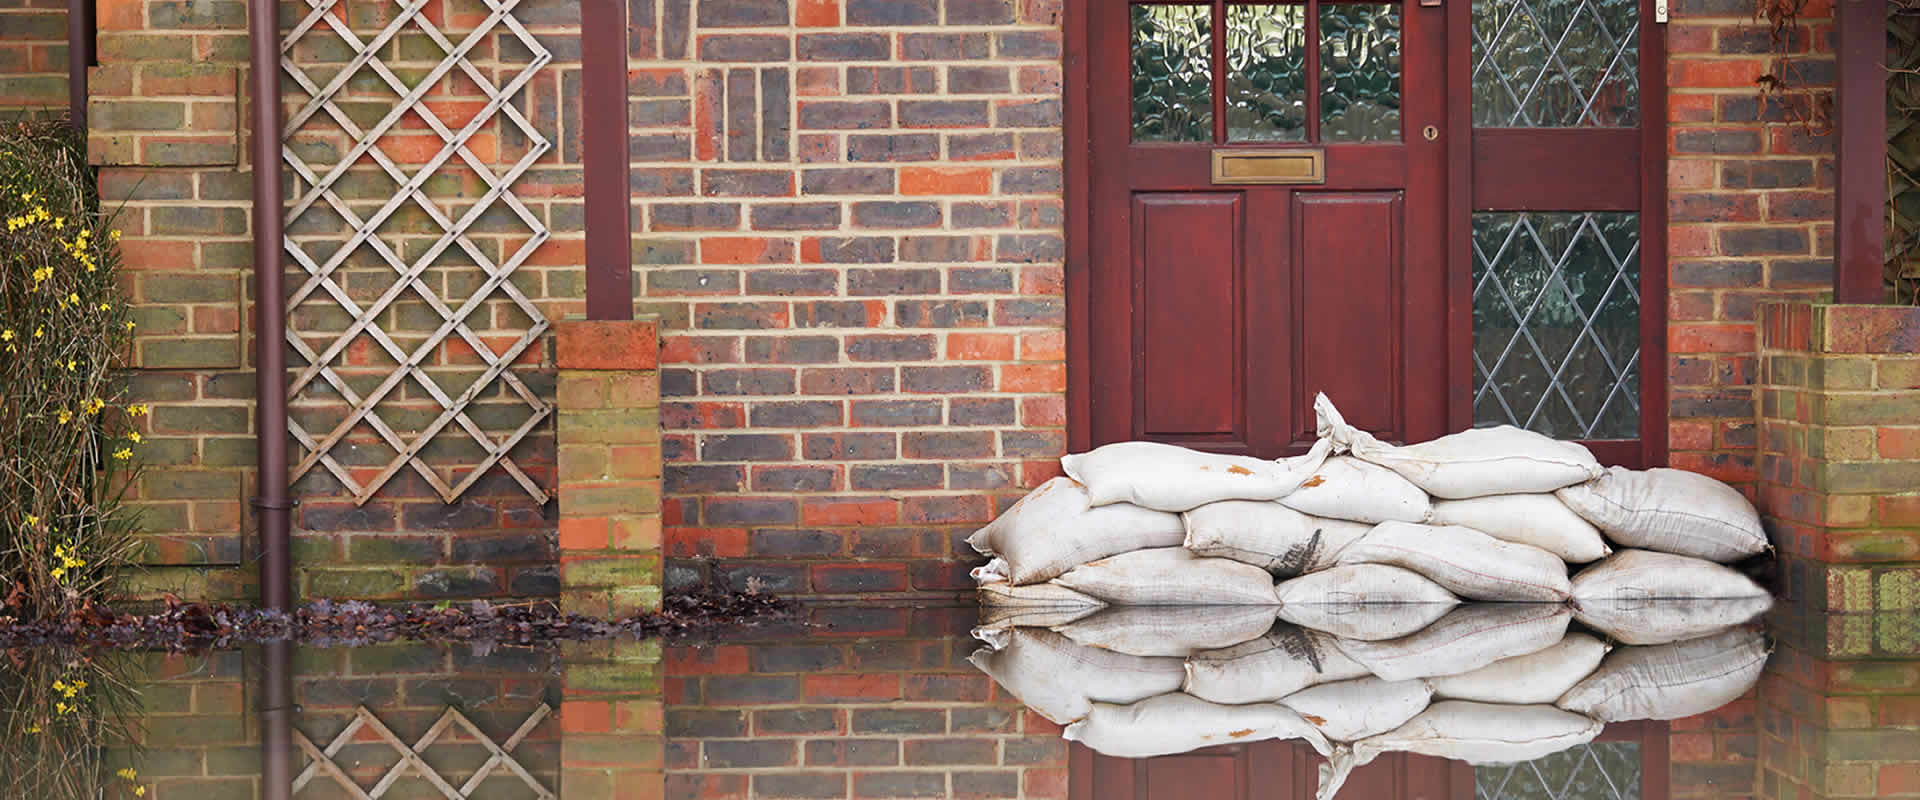 MMS Contracting Are Here To Help With Flood Damage Properties